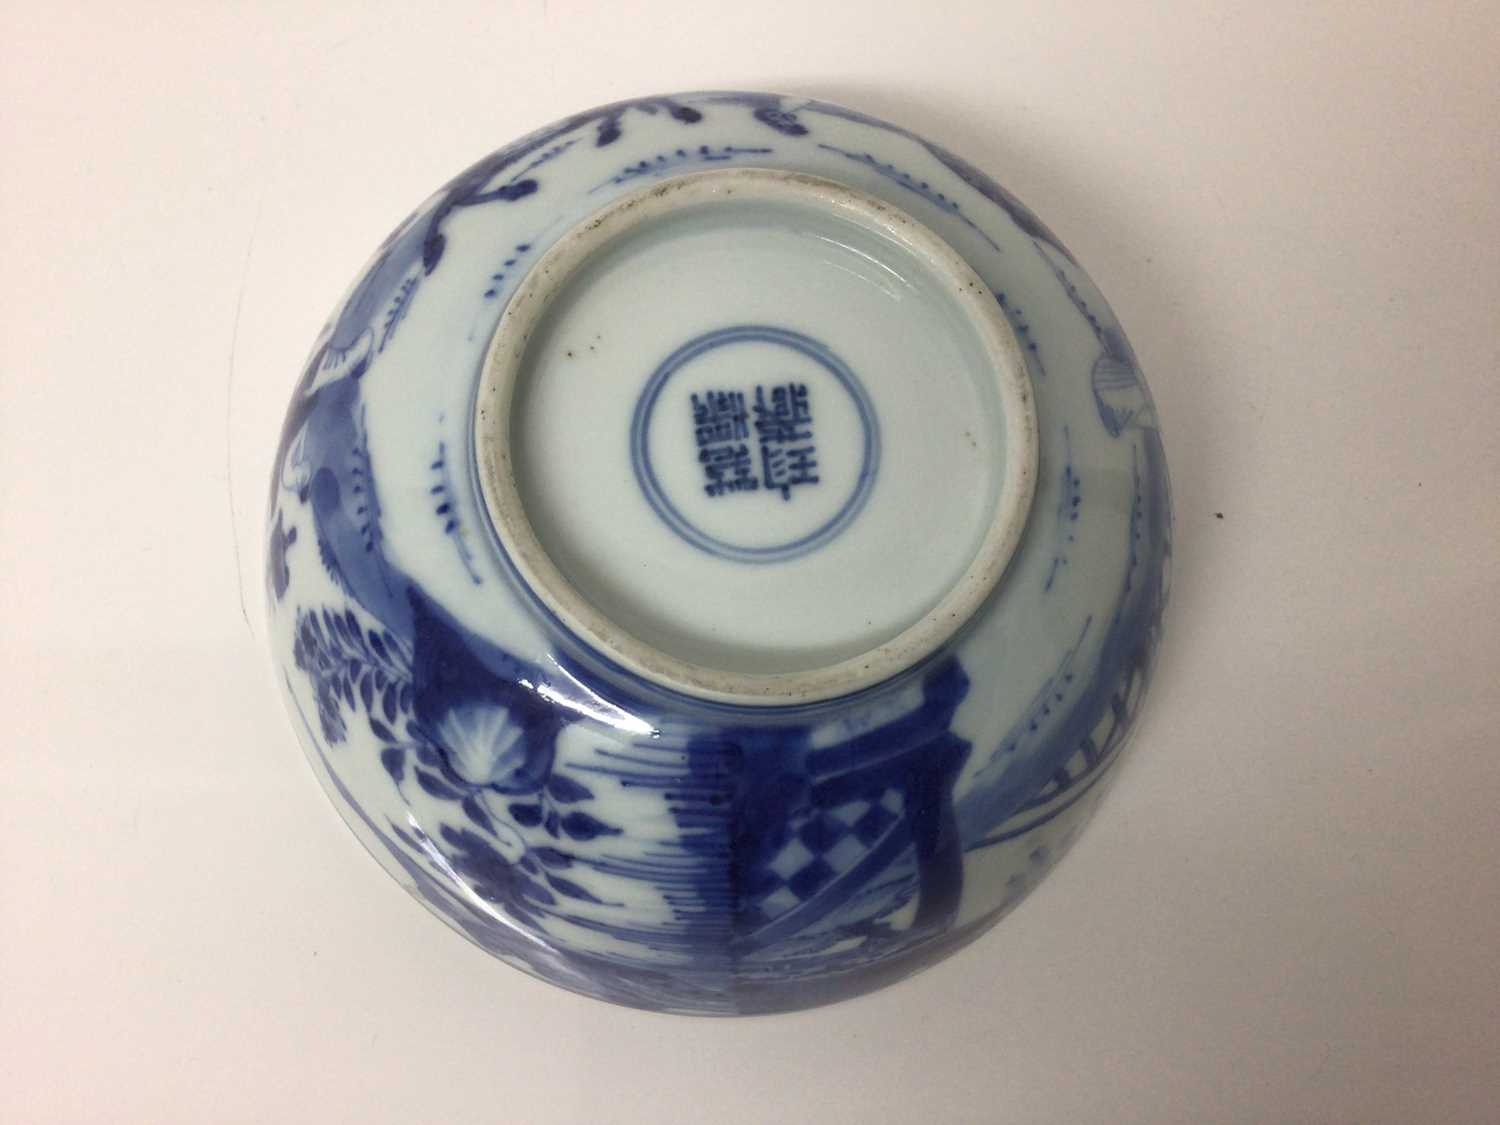 Chinese Kangxi porcelain jug and cover with later silver mount, together with a bowl (2) - Image 4 of 16